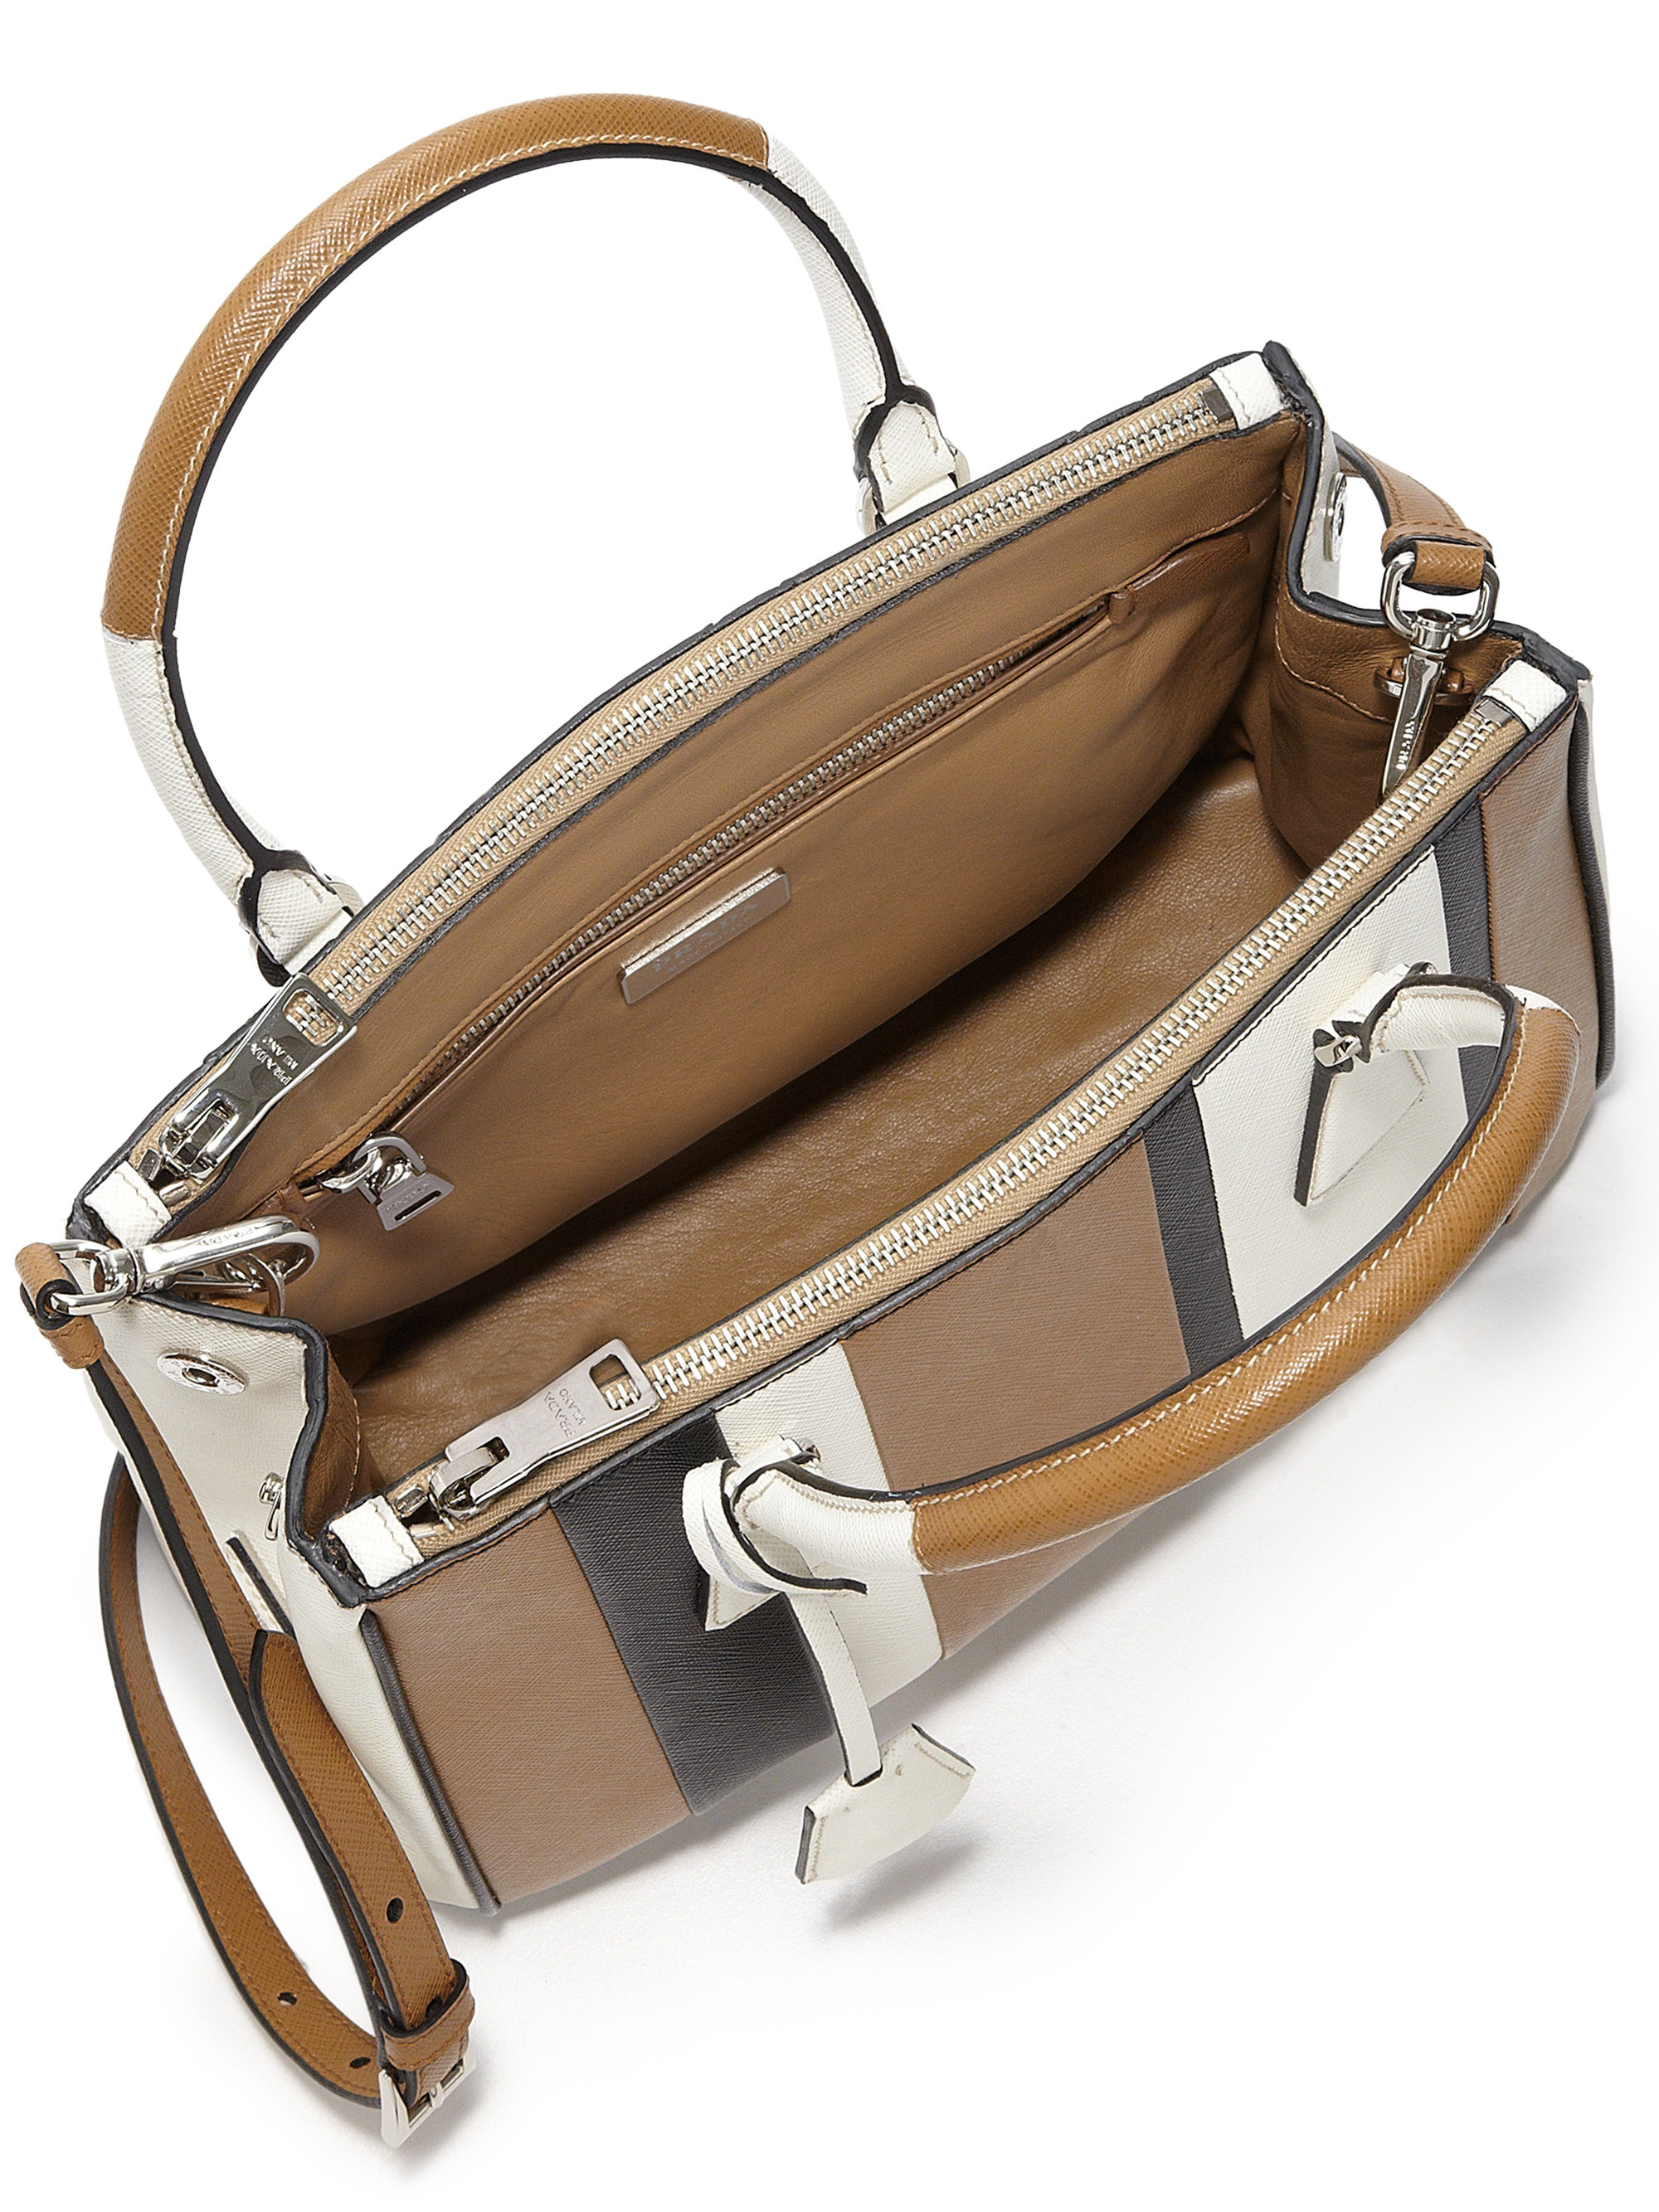 prada handbag outlet online - Prada Saffiano Lux Small Baiadera Double Zip Tote in Brown ...